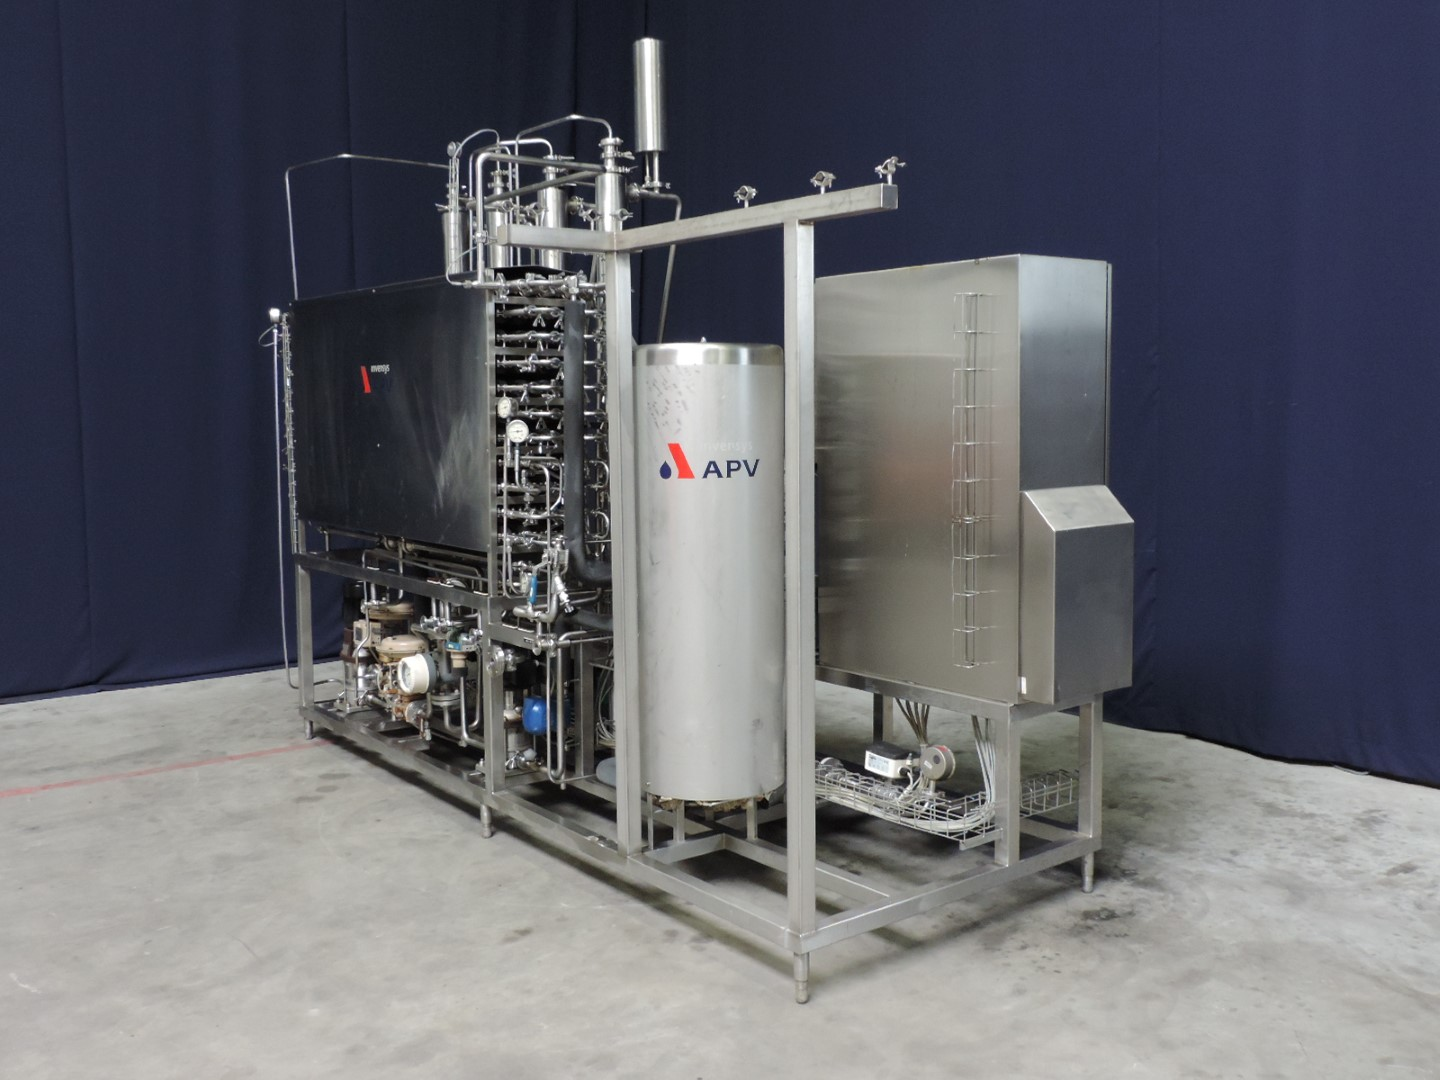 APV MP150  VT 460+ Scrape heat exchangers